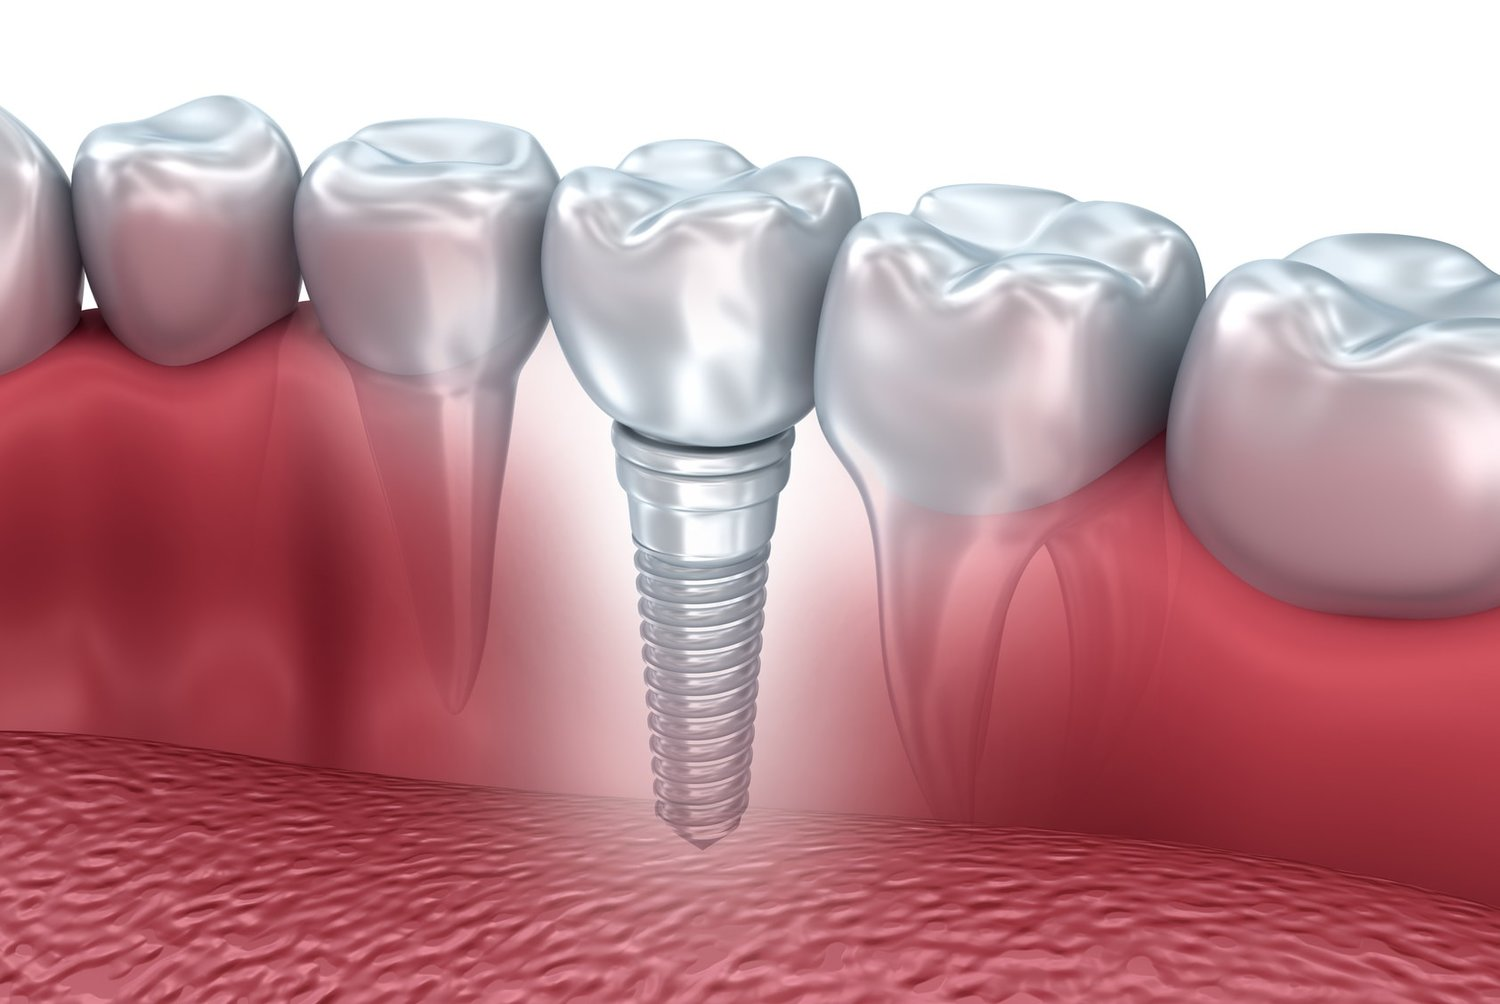 Singe tooth implant